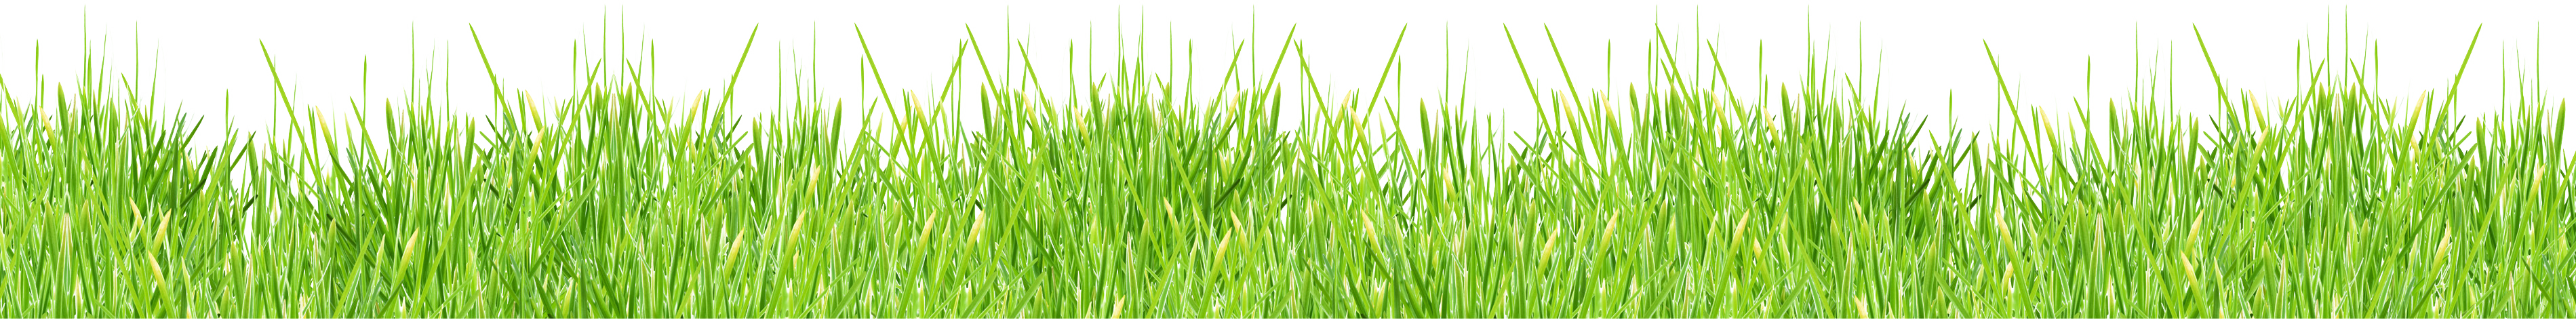 Football field background clipart. Grass png images pictures